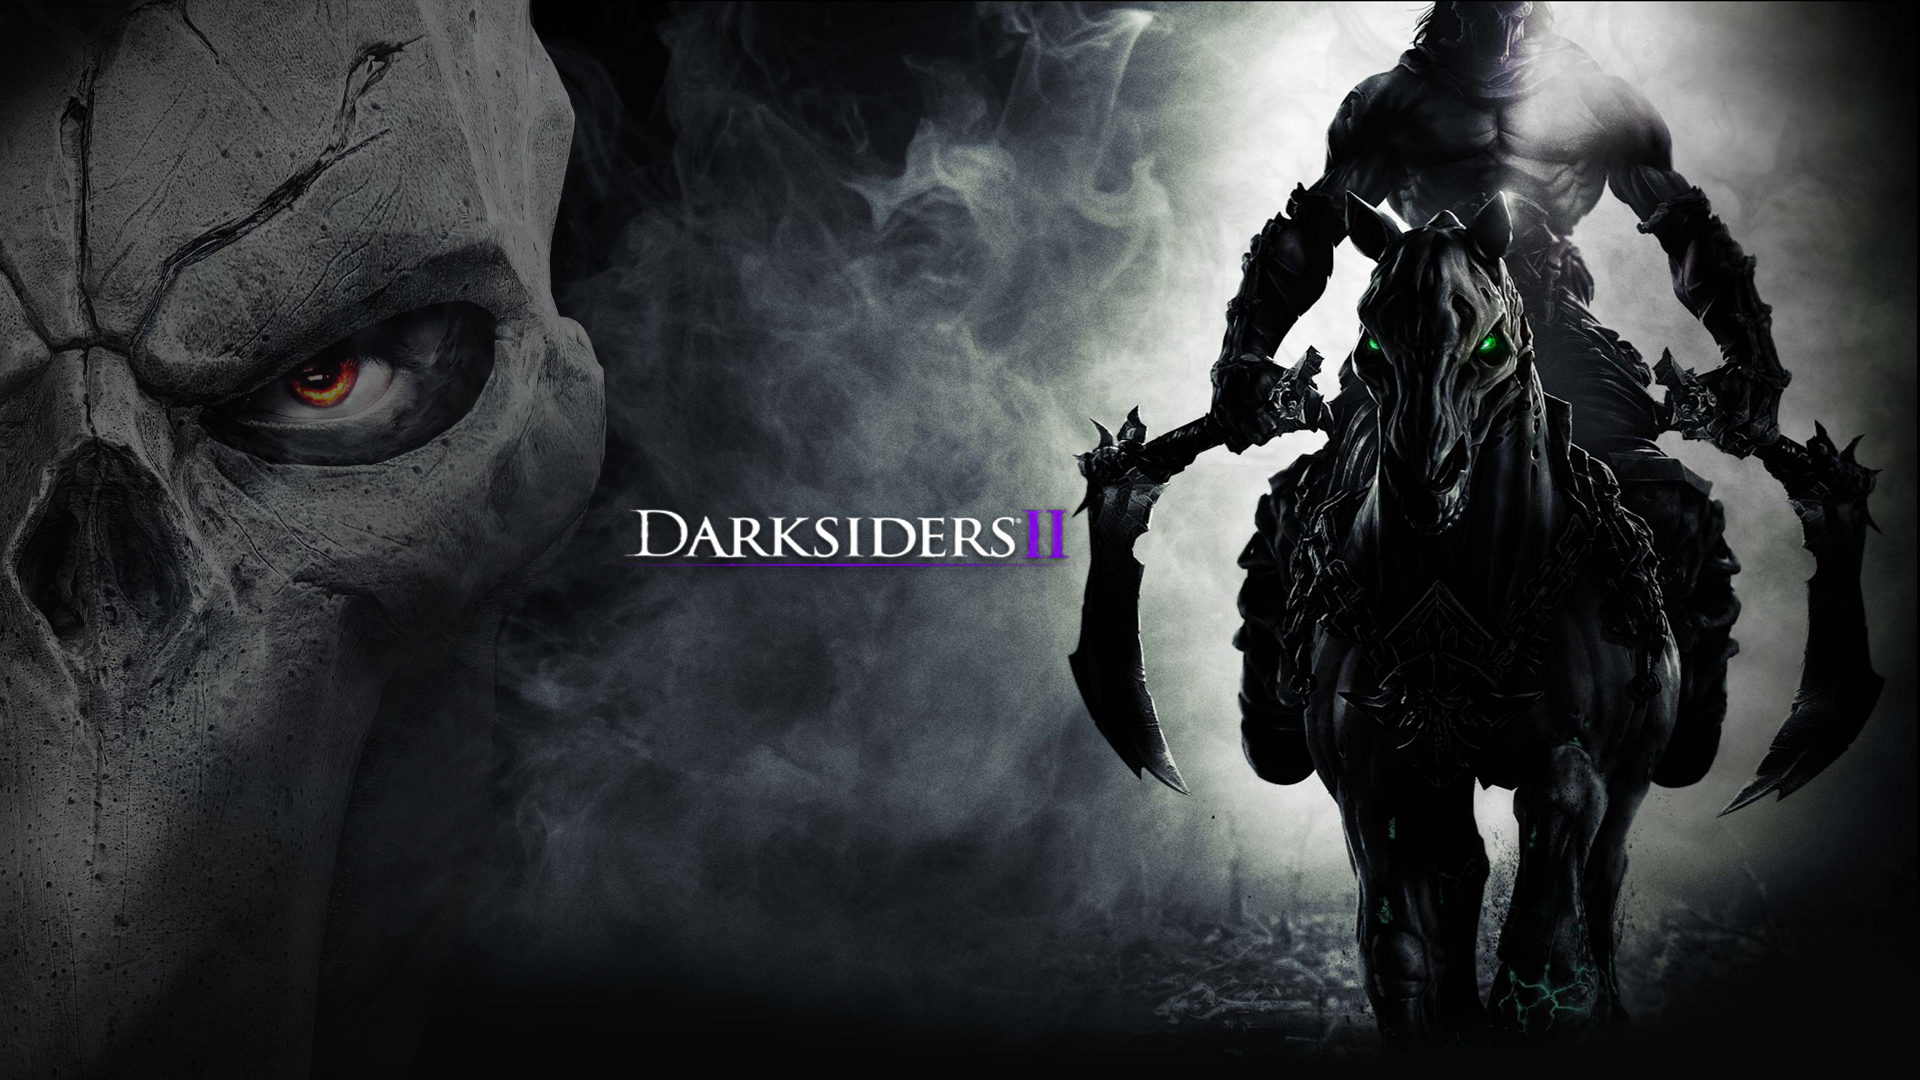 Alpha Coders Darksiders Fan Club Wallpaper Abyss Video Game Darksiders ...: wall.alphacoders.com/big.php?i=284276